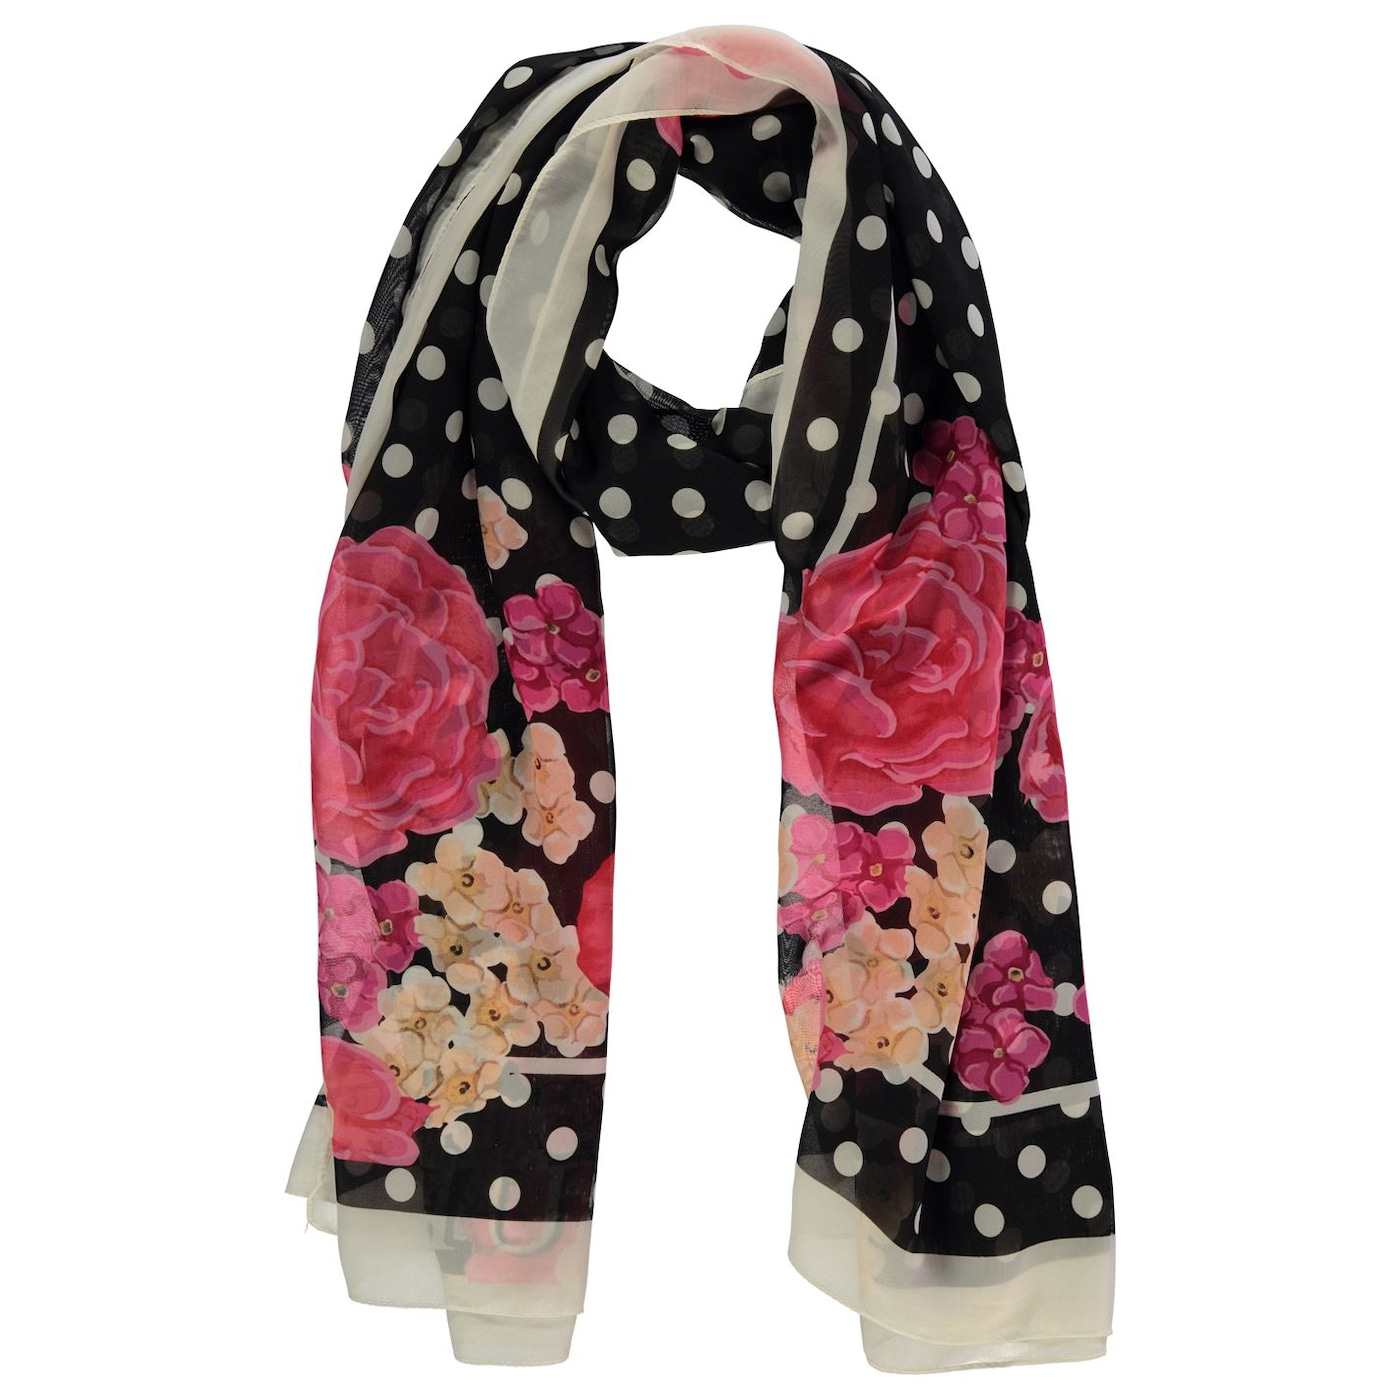 Guess Polka Dot Scarf Ladies